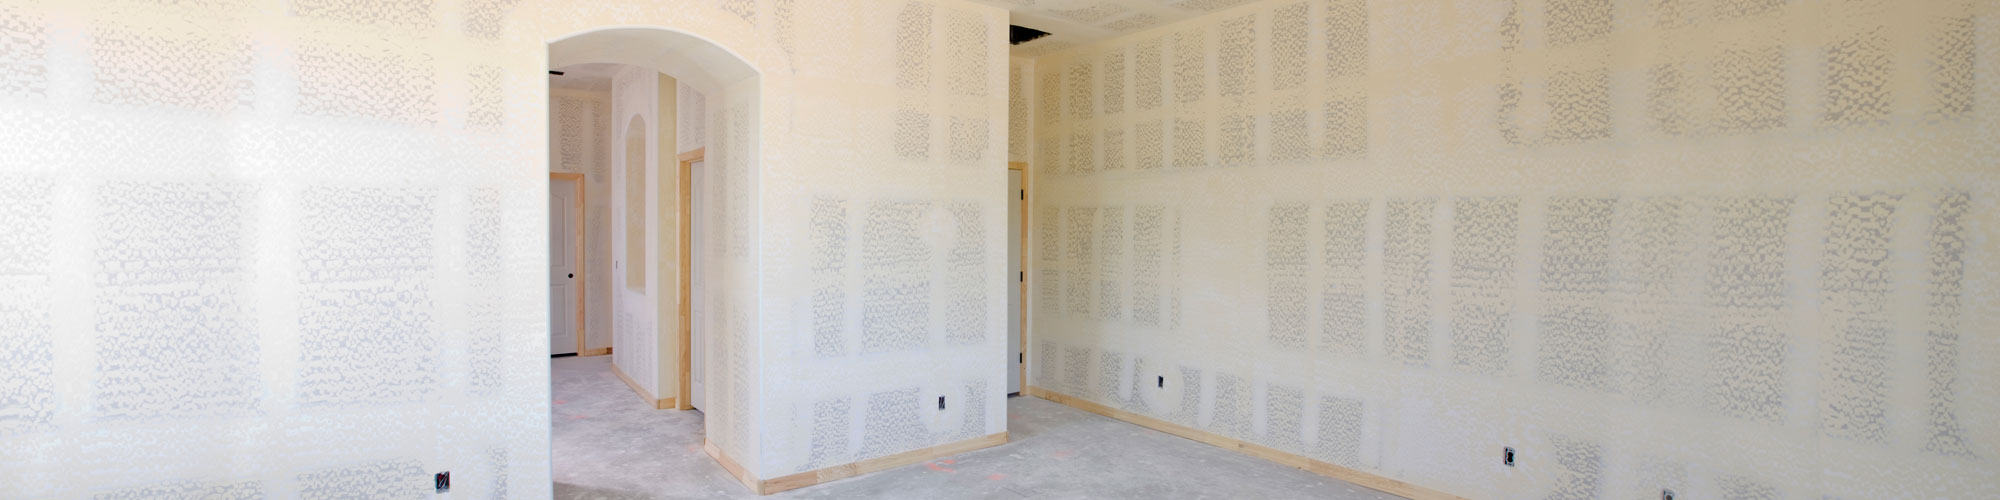 Painting & Drywall Services